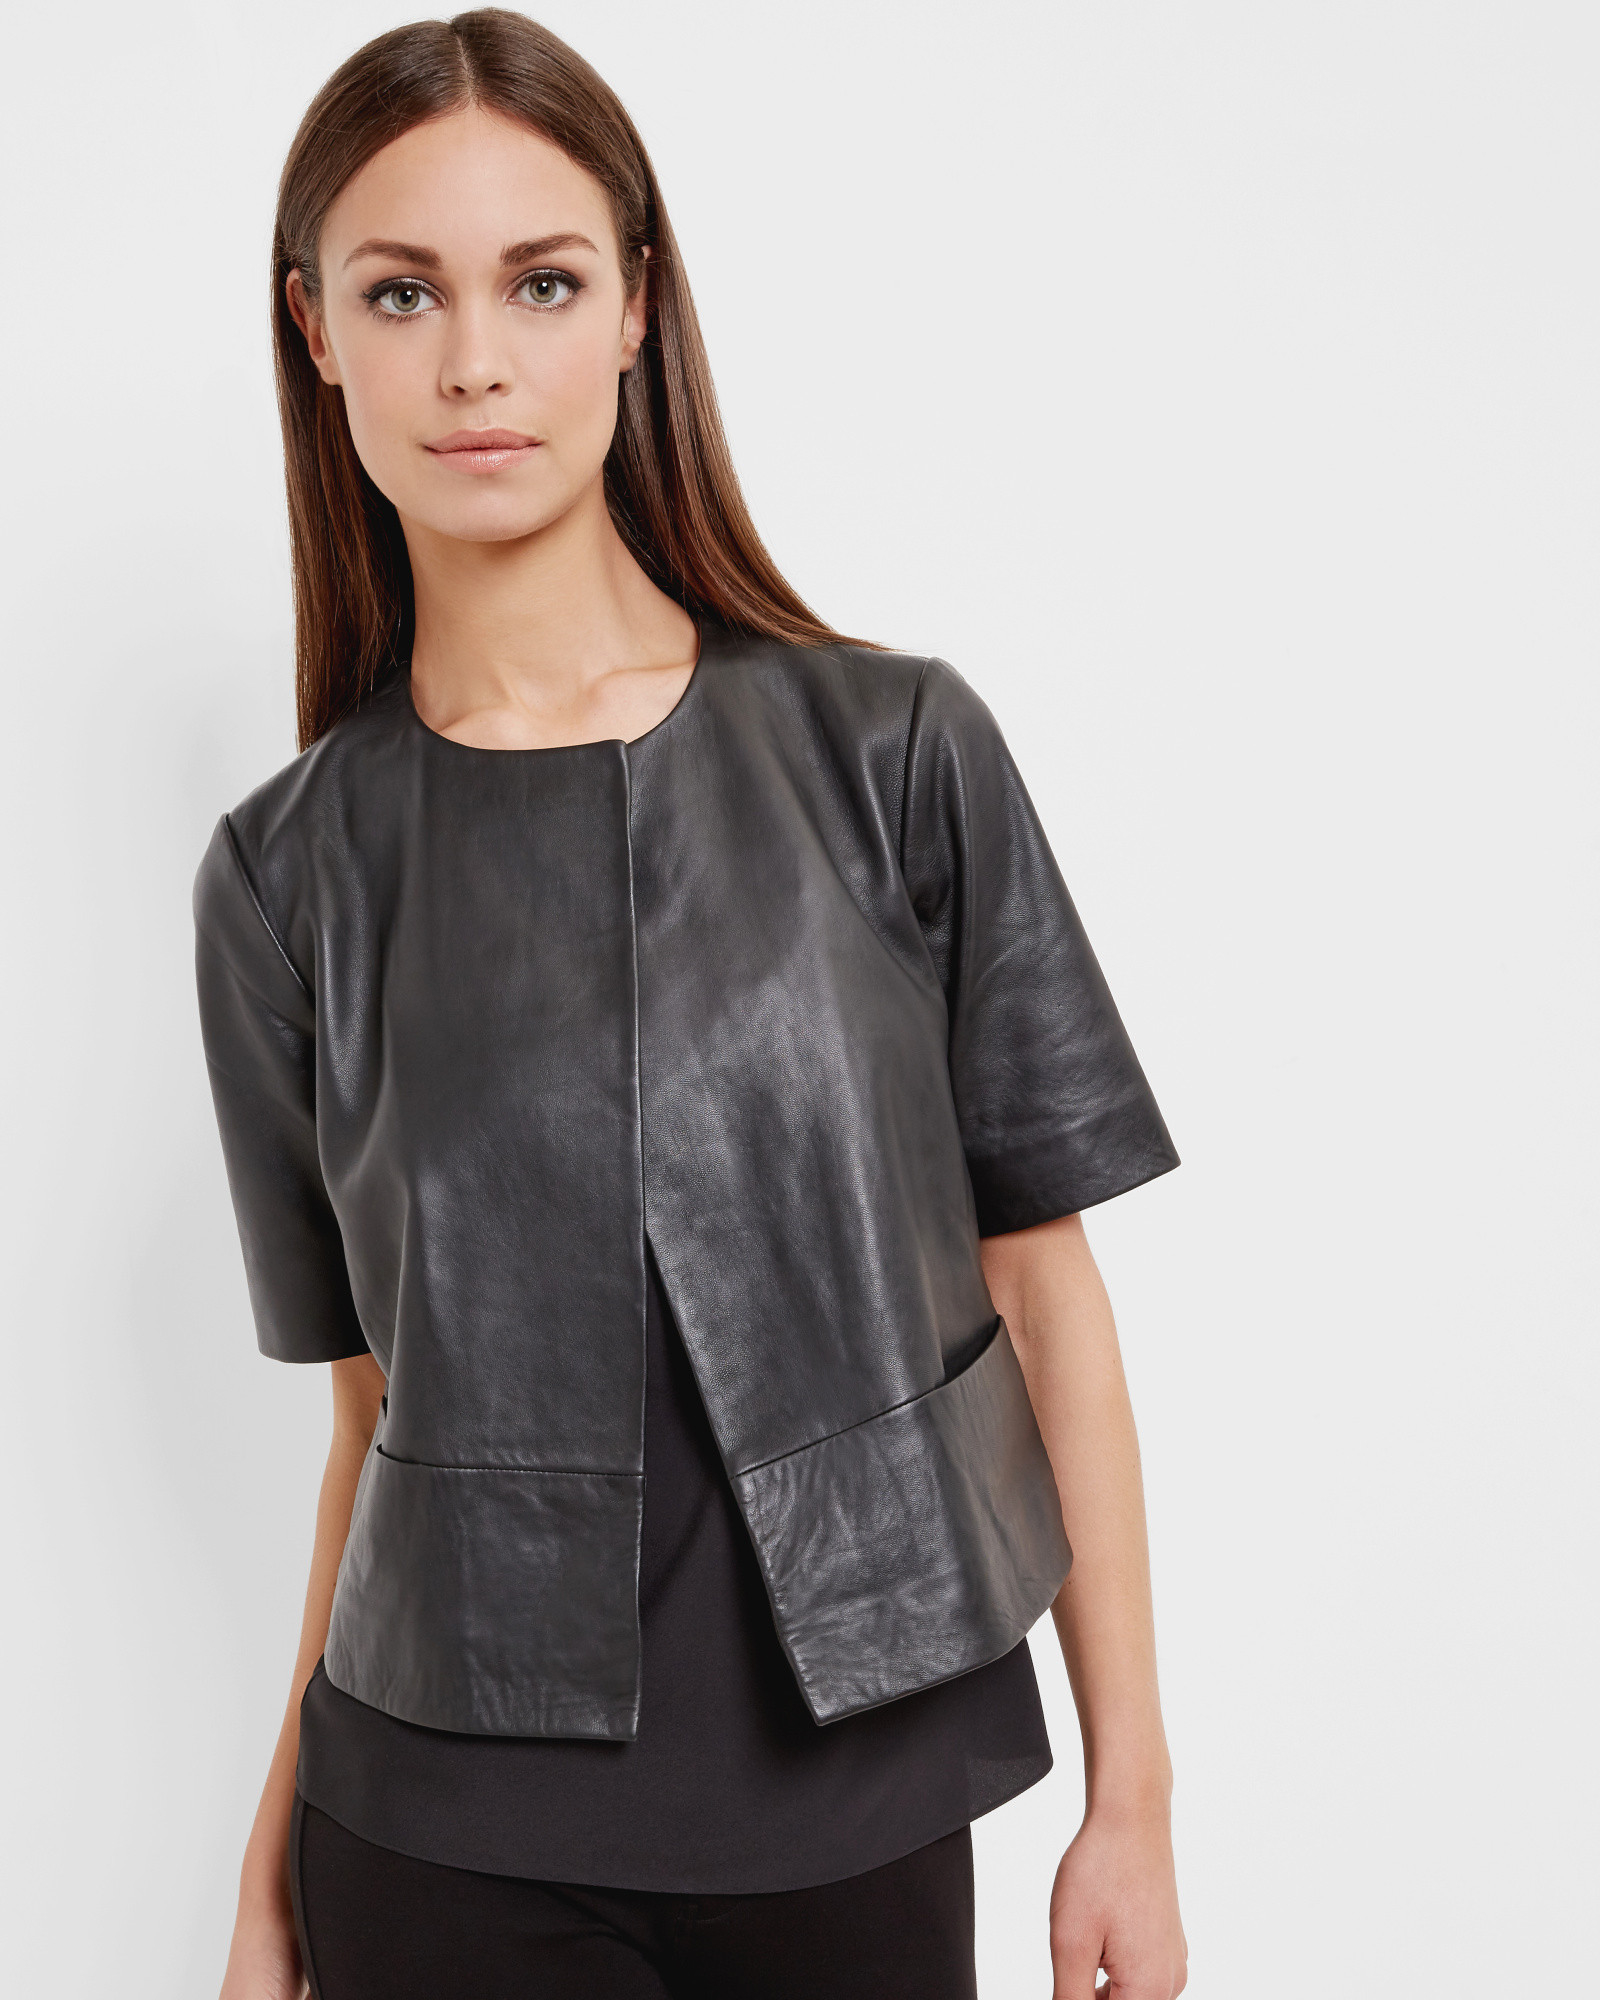 Ted baker leather jackets